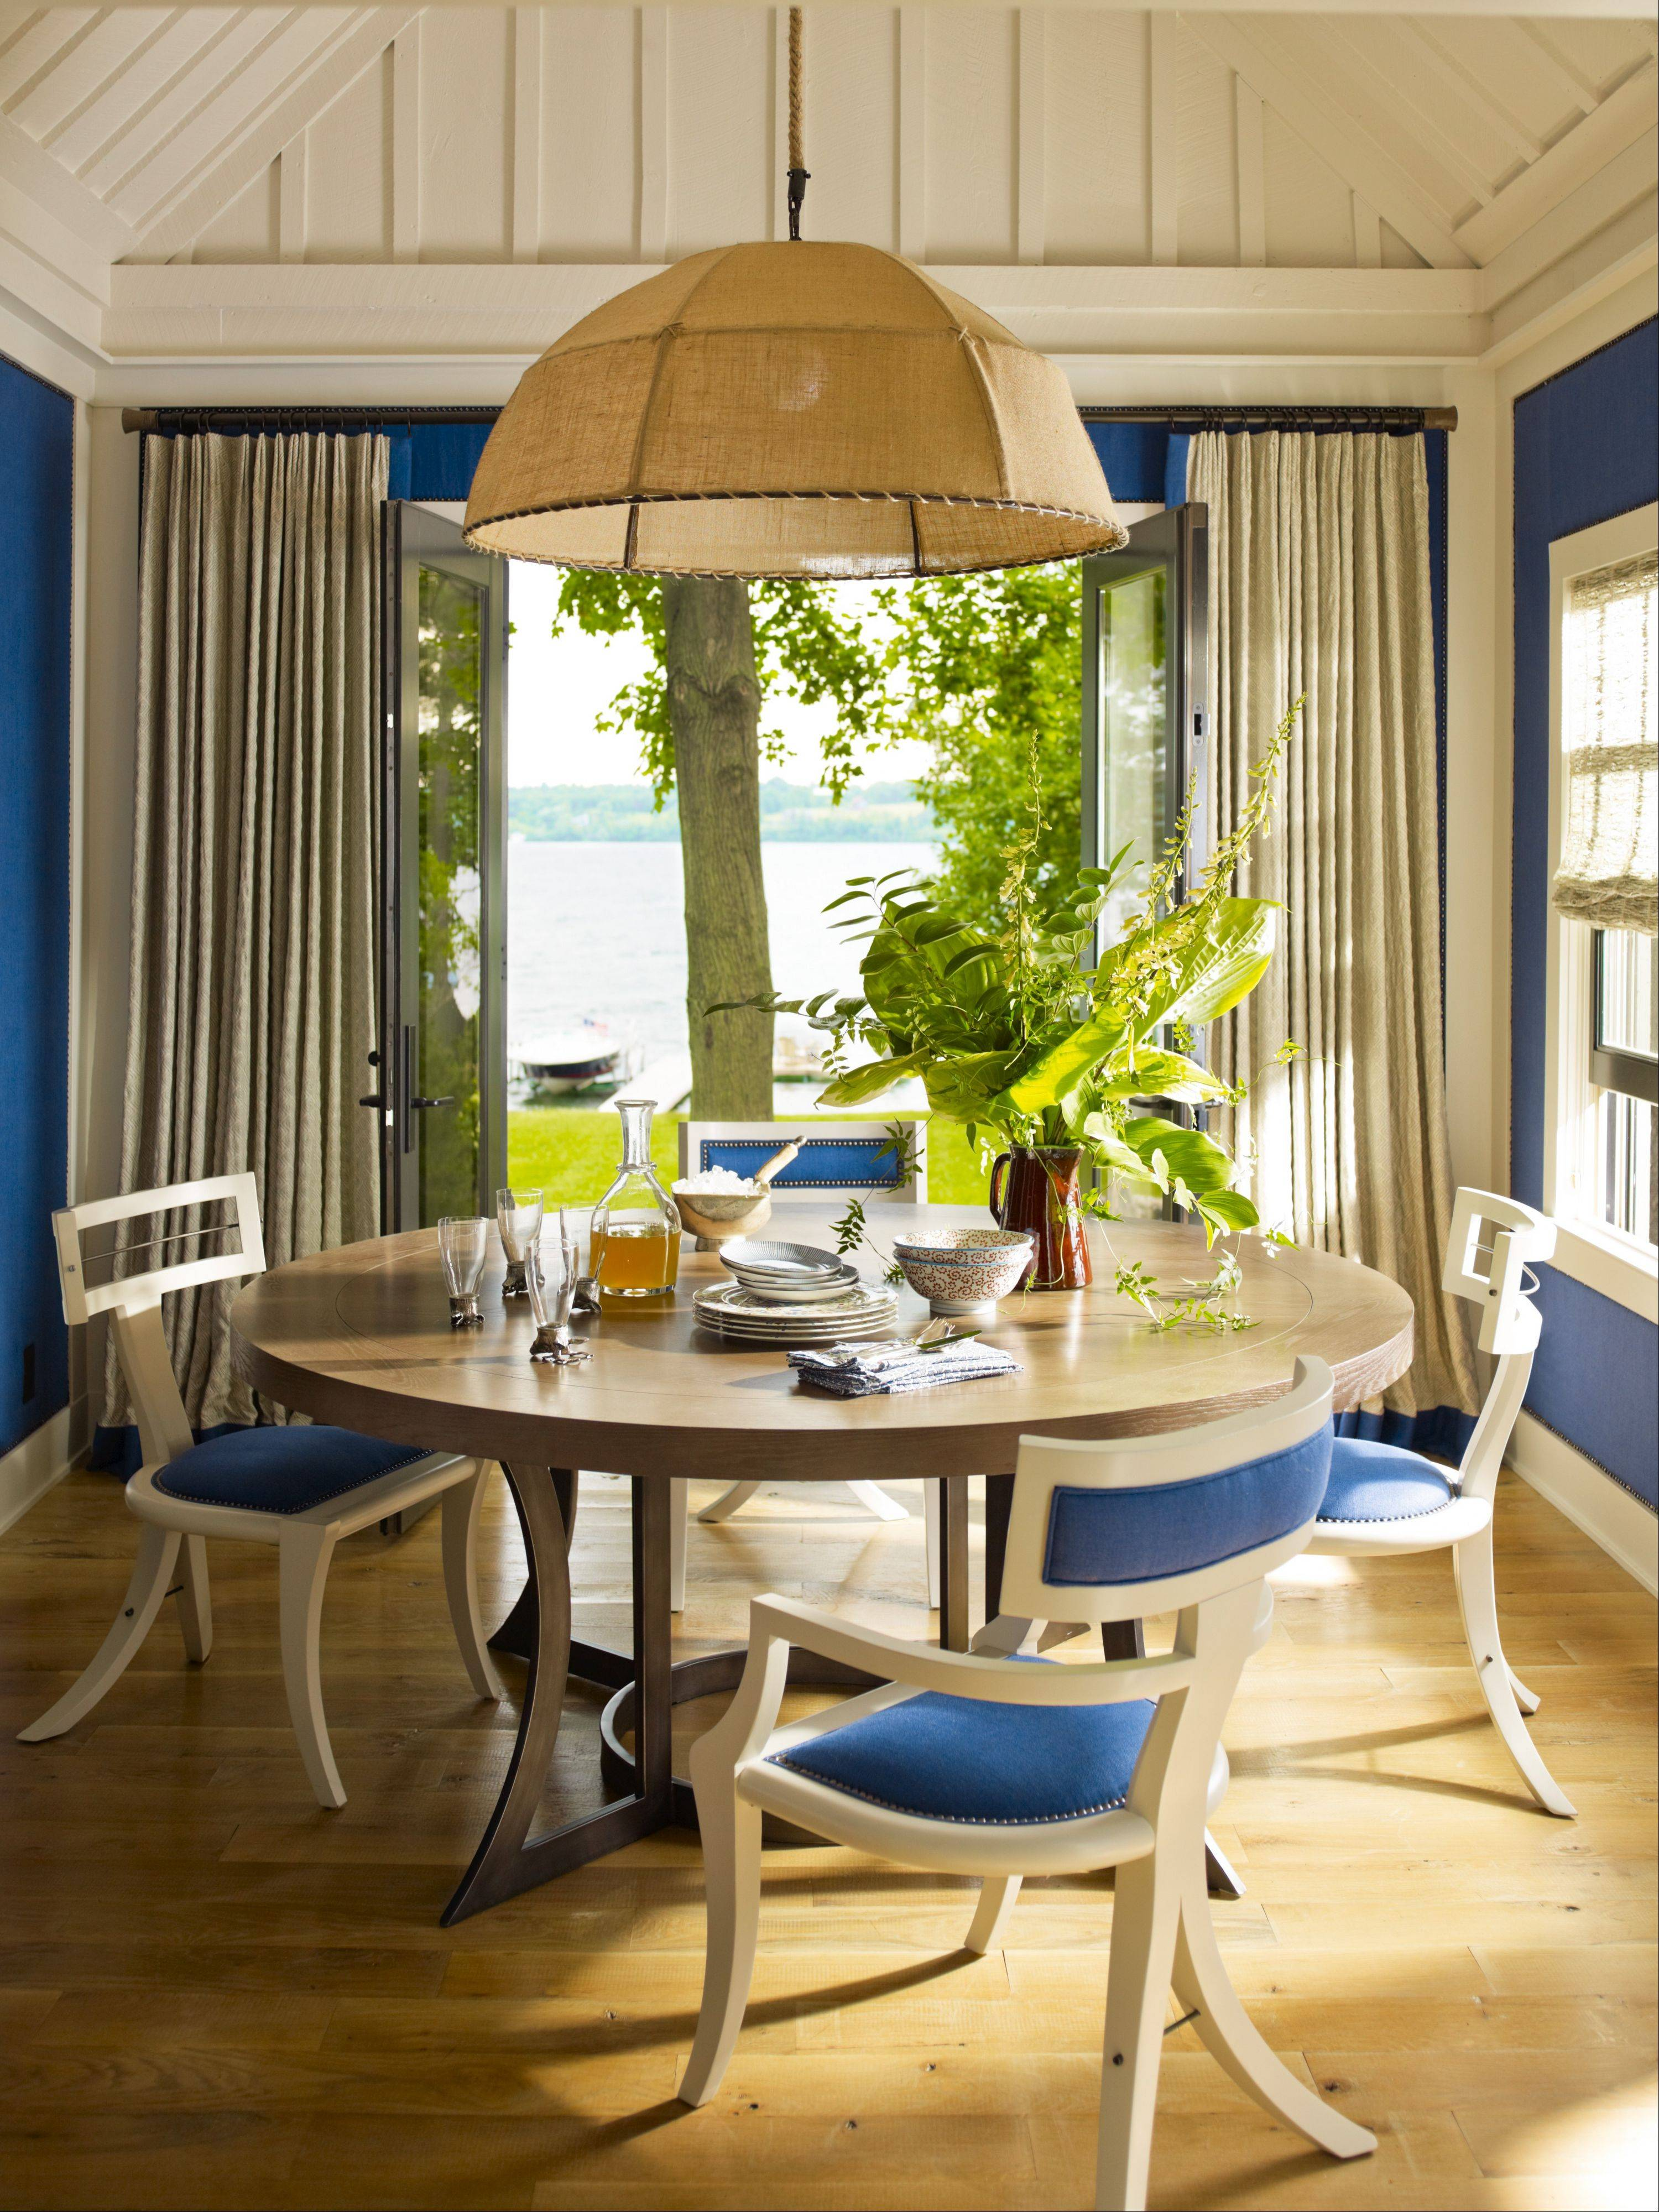 Reflective nail heads and white trim create a tailored look that means the dining room can carry a deep blue on walls and chairs.